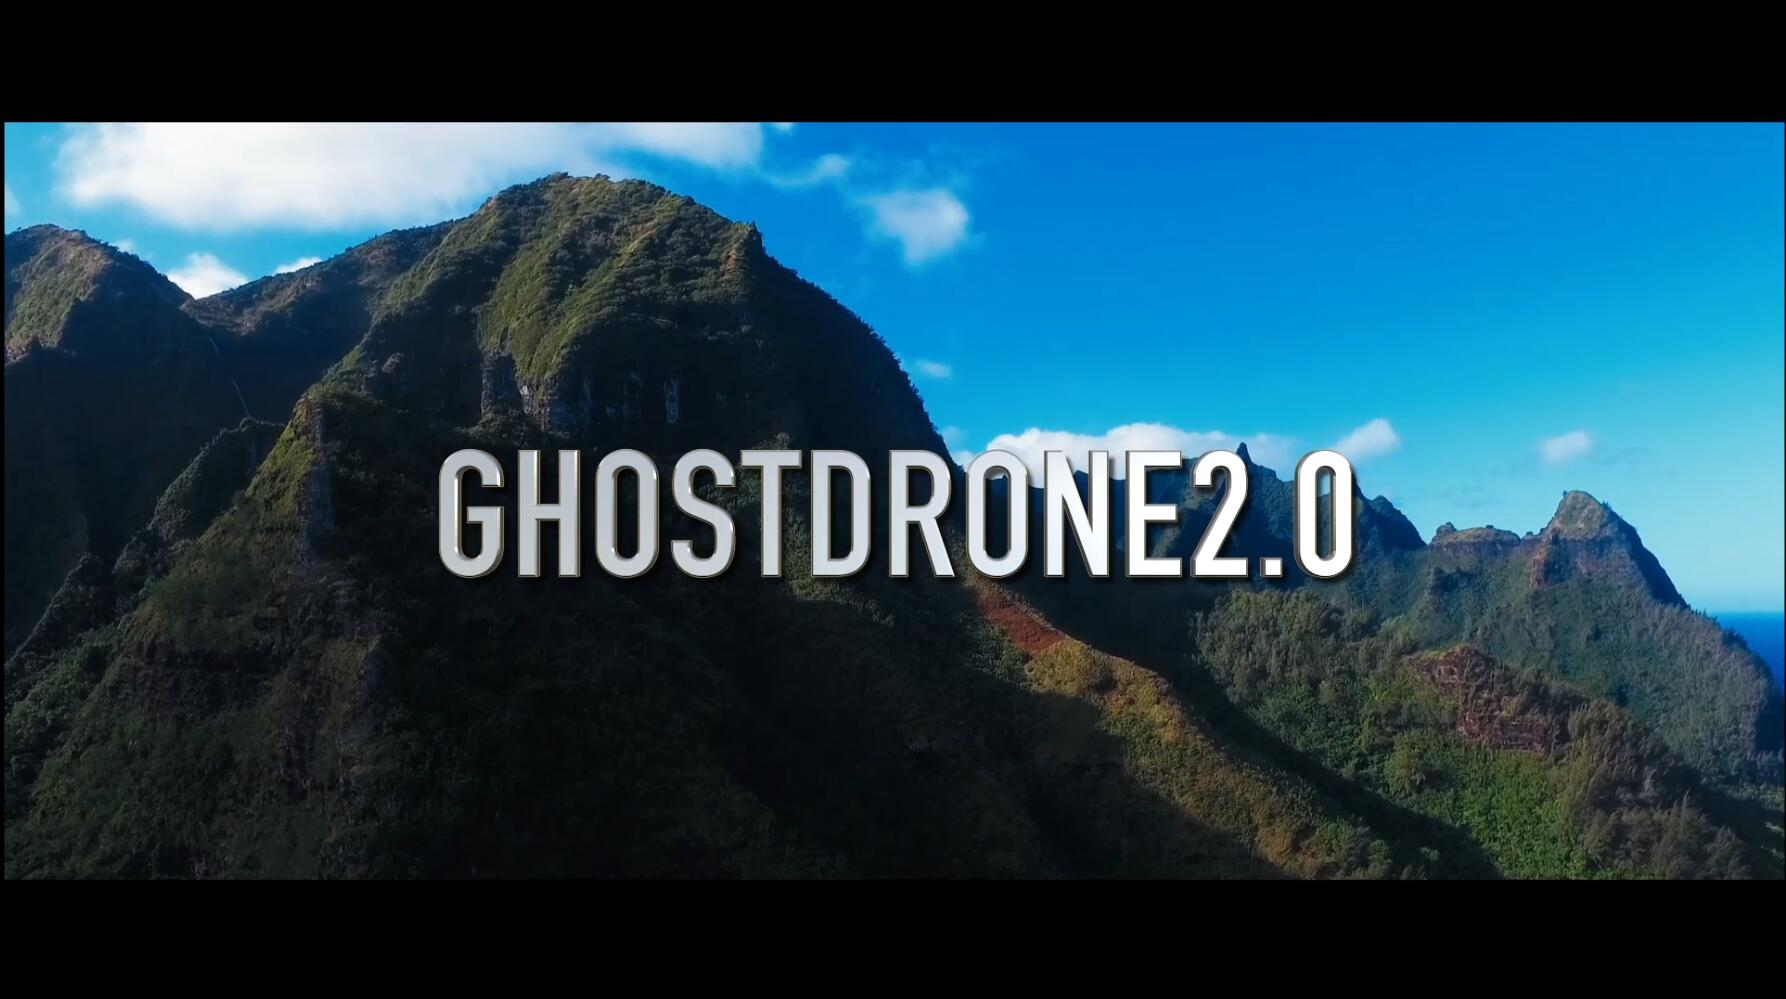 Introducing GHOSTDRONE2.0